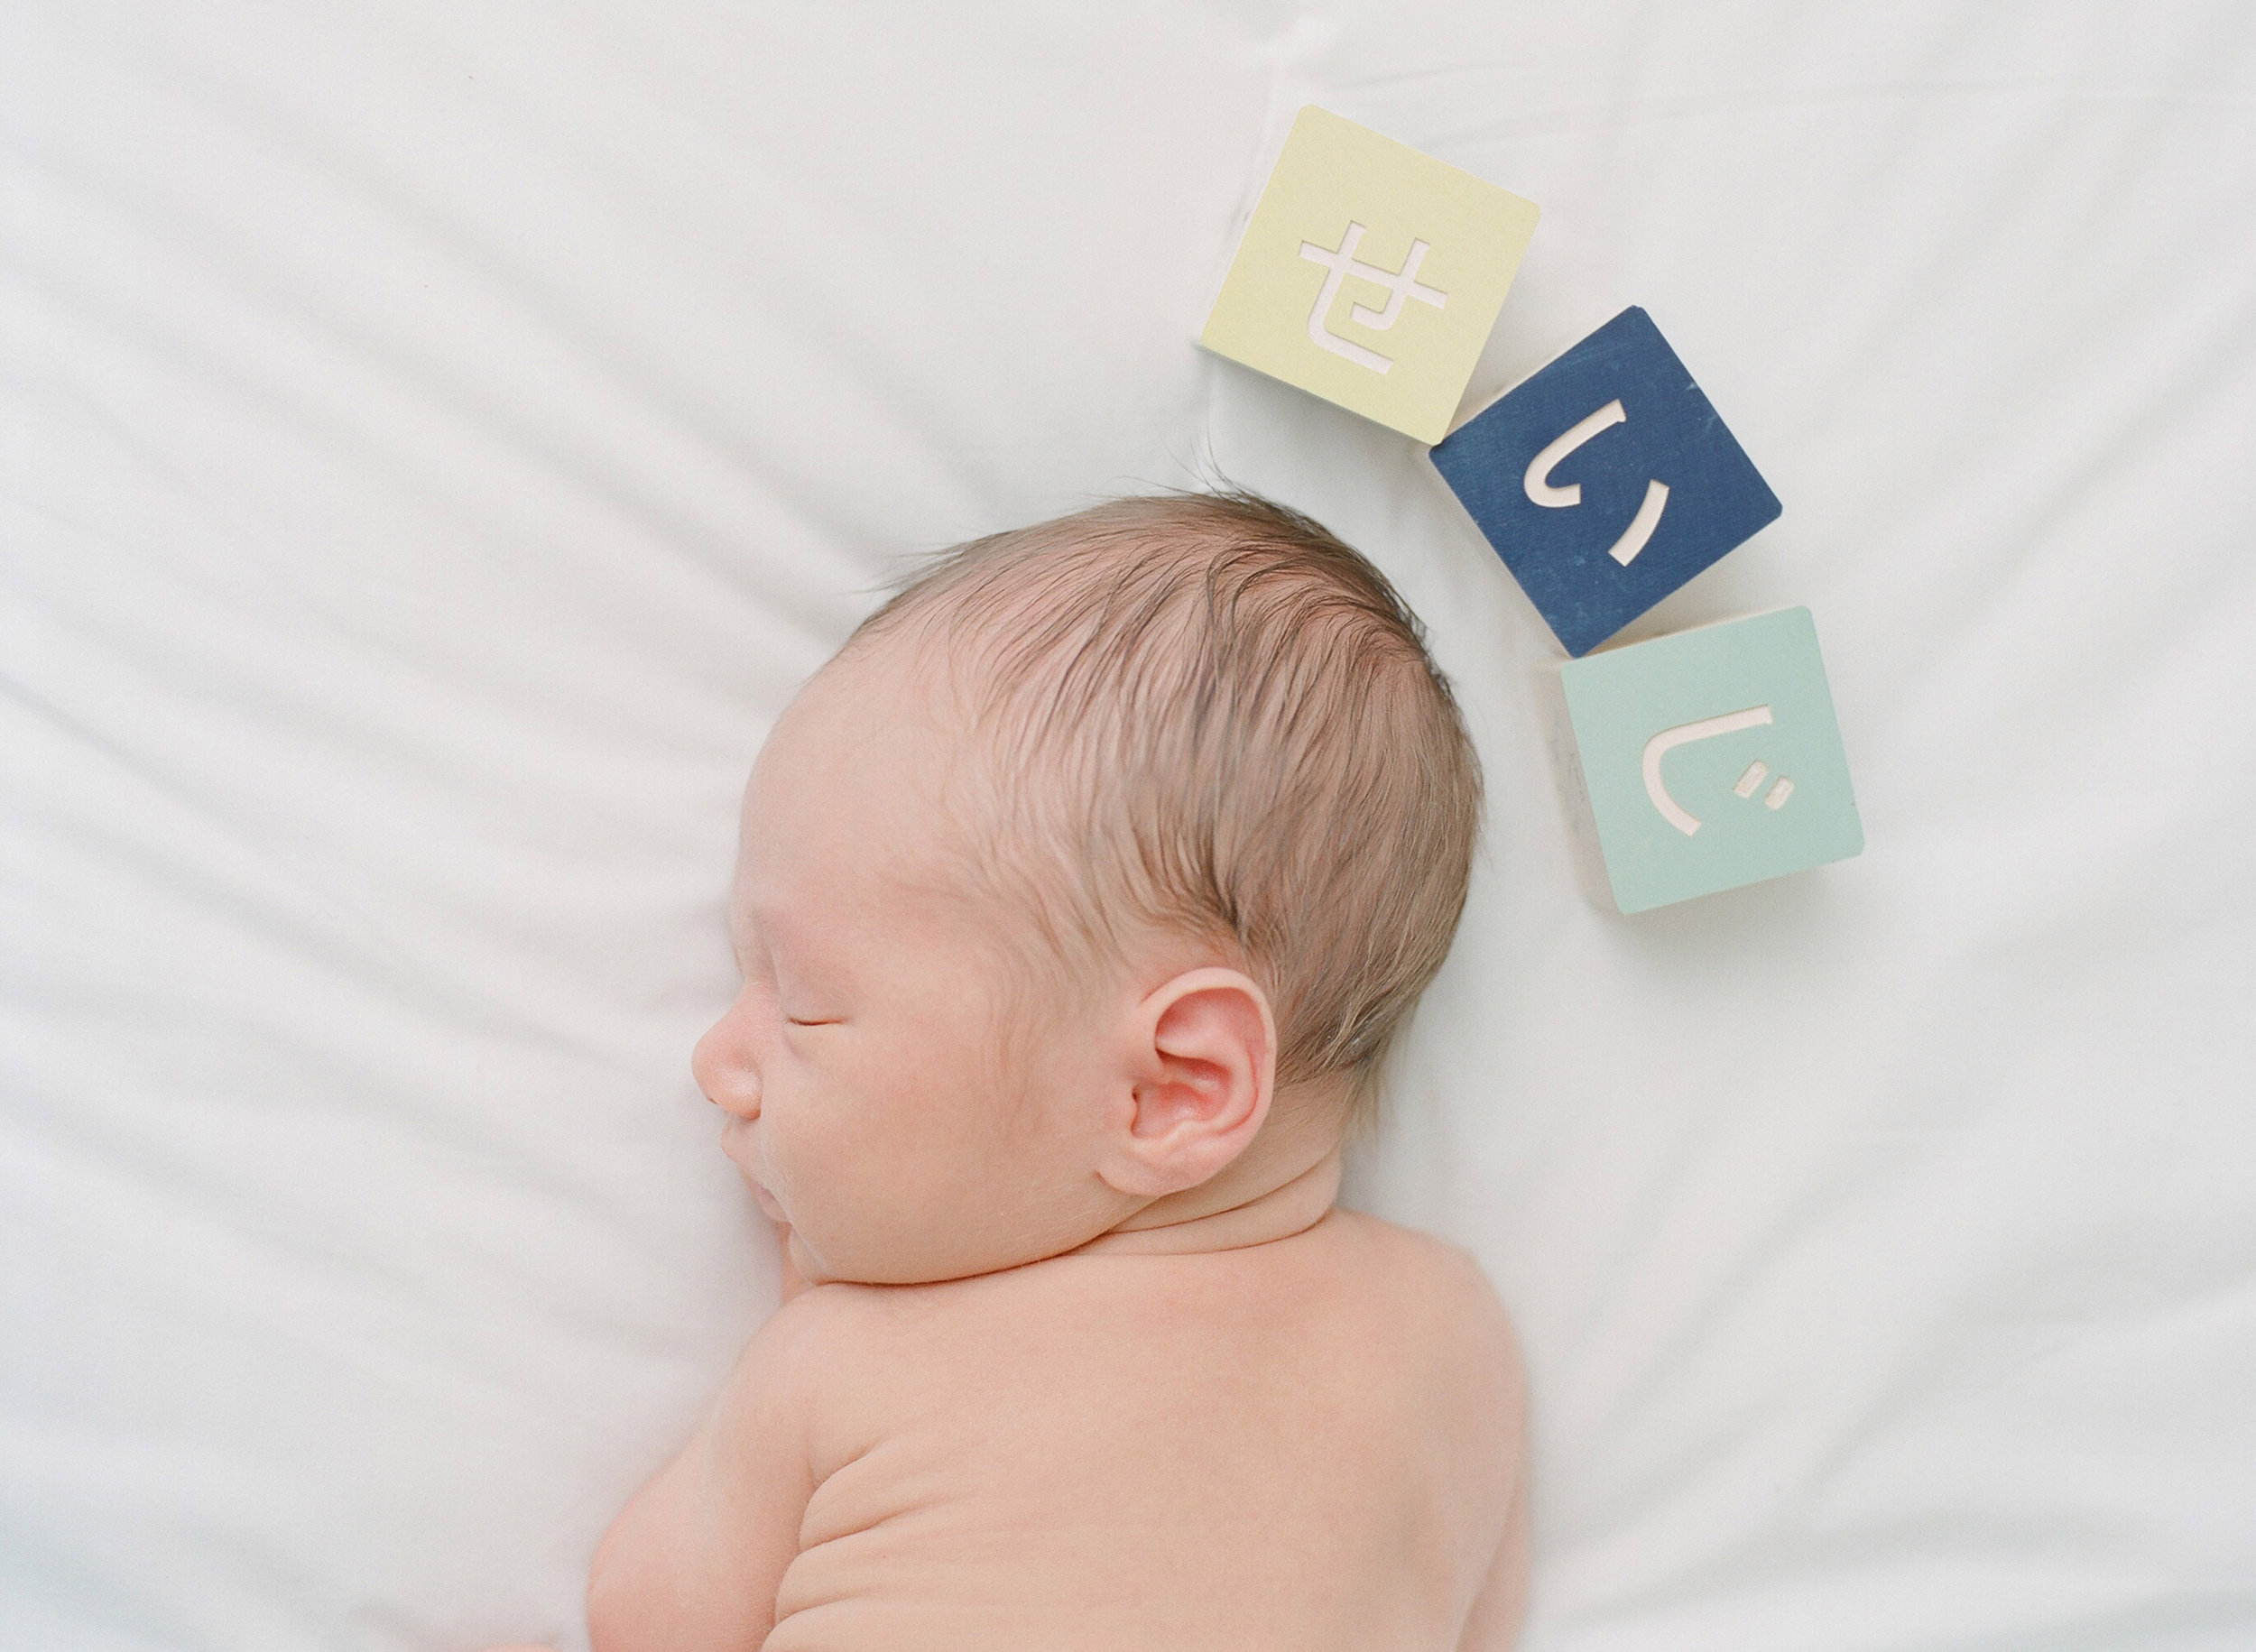 sandra coan seattle newborn baby photography japanese blocks, toys, and dolls